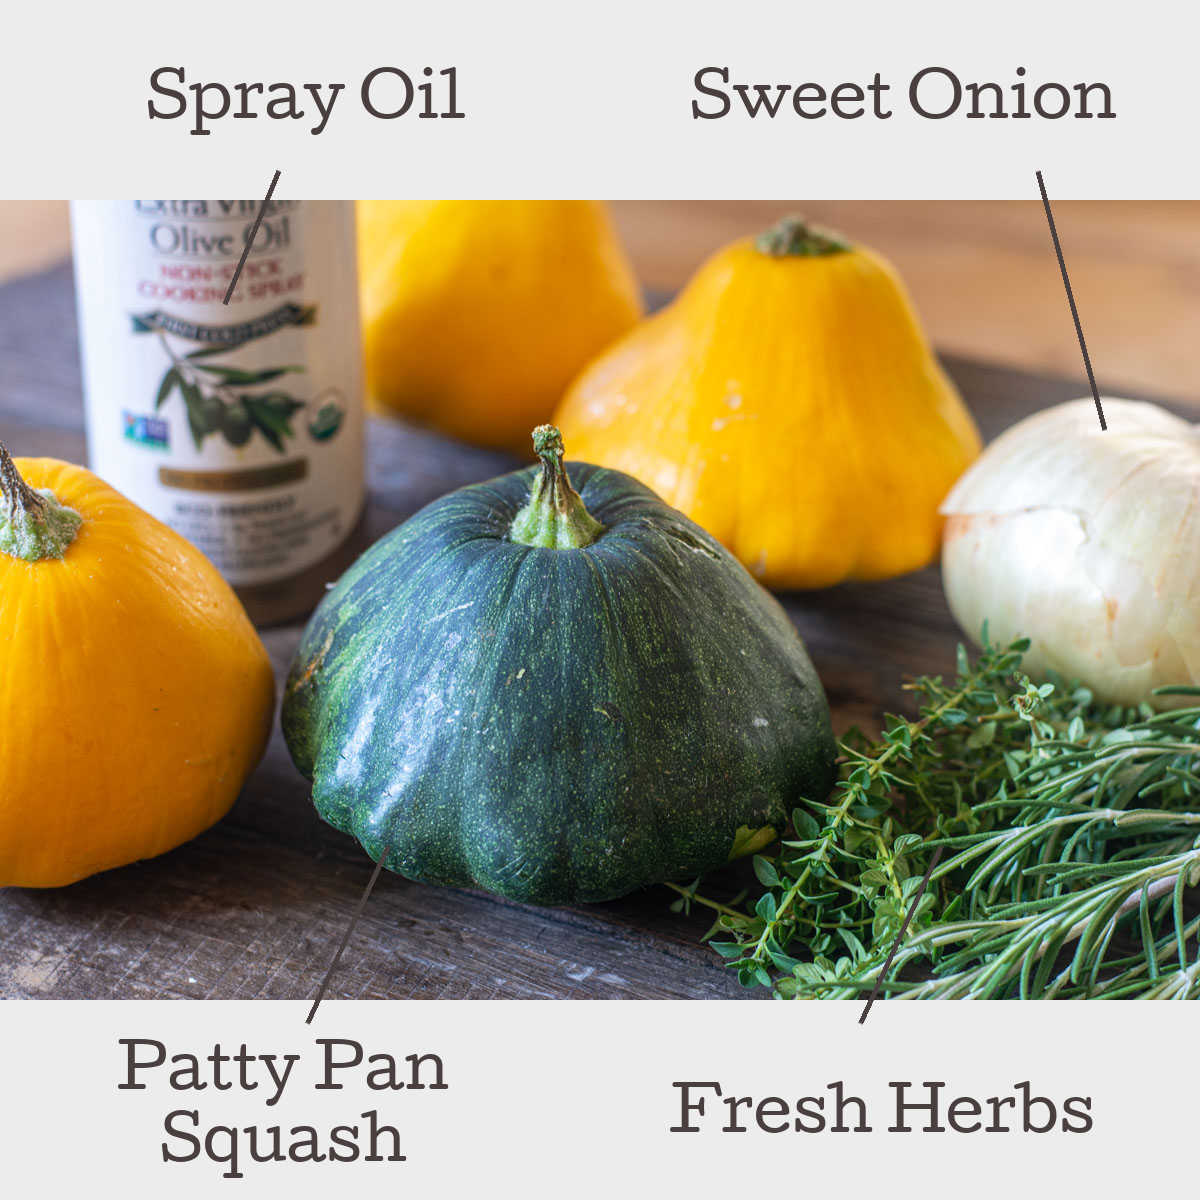 ingredient photo showing different varieties of patty pan squash, an onion, and fresh herbs with labels.